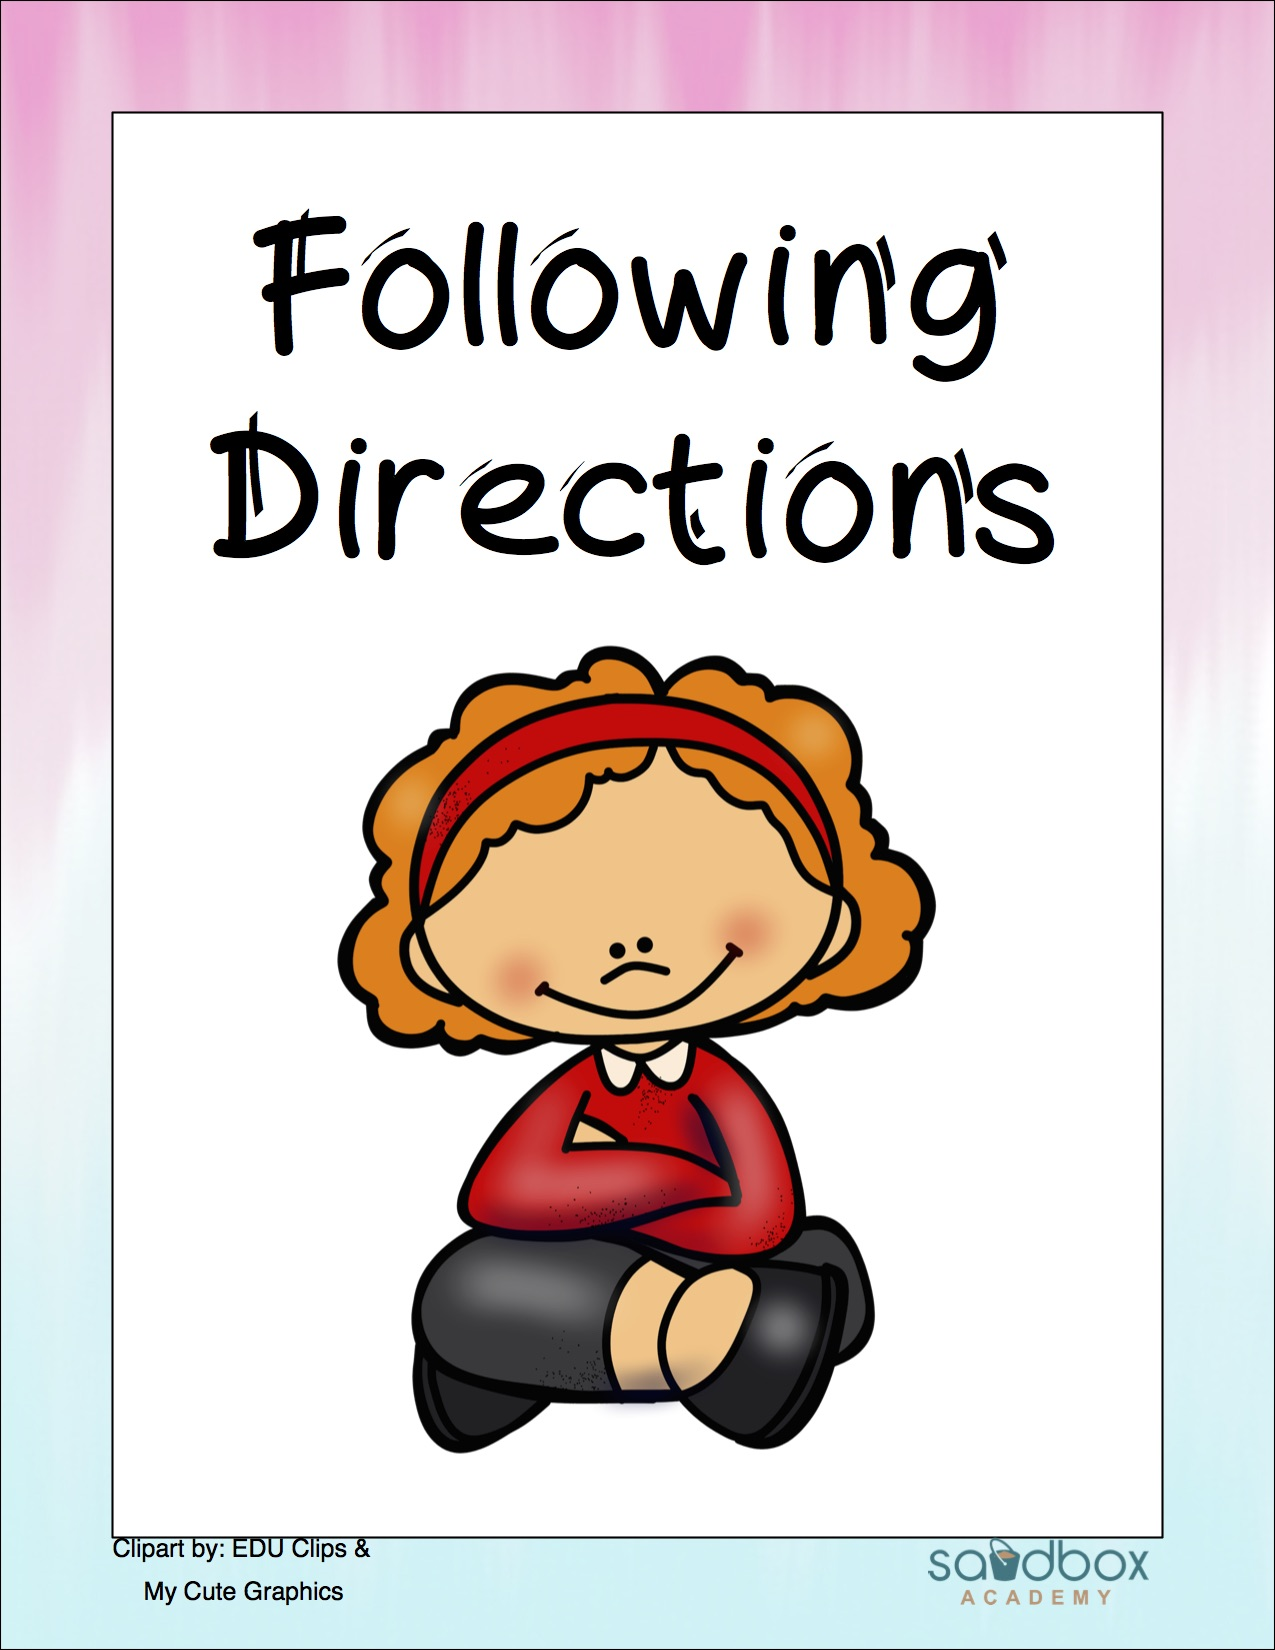 Follow directions clipart. Direction following social story